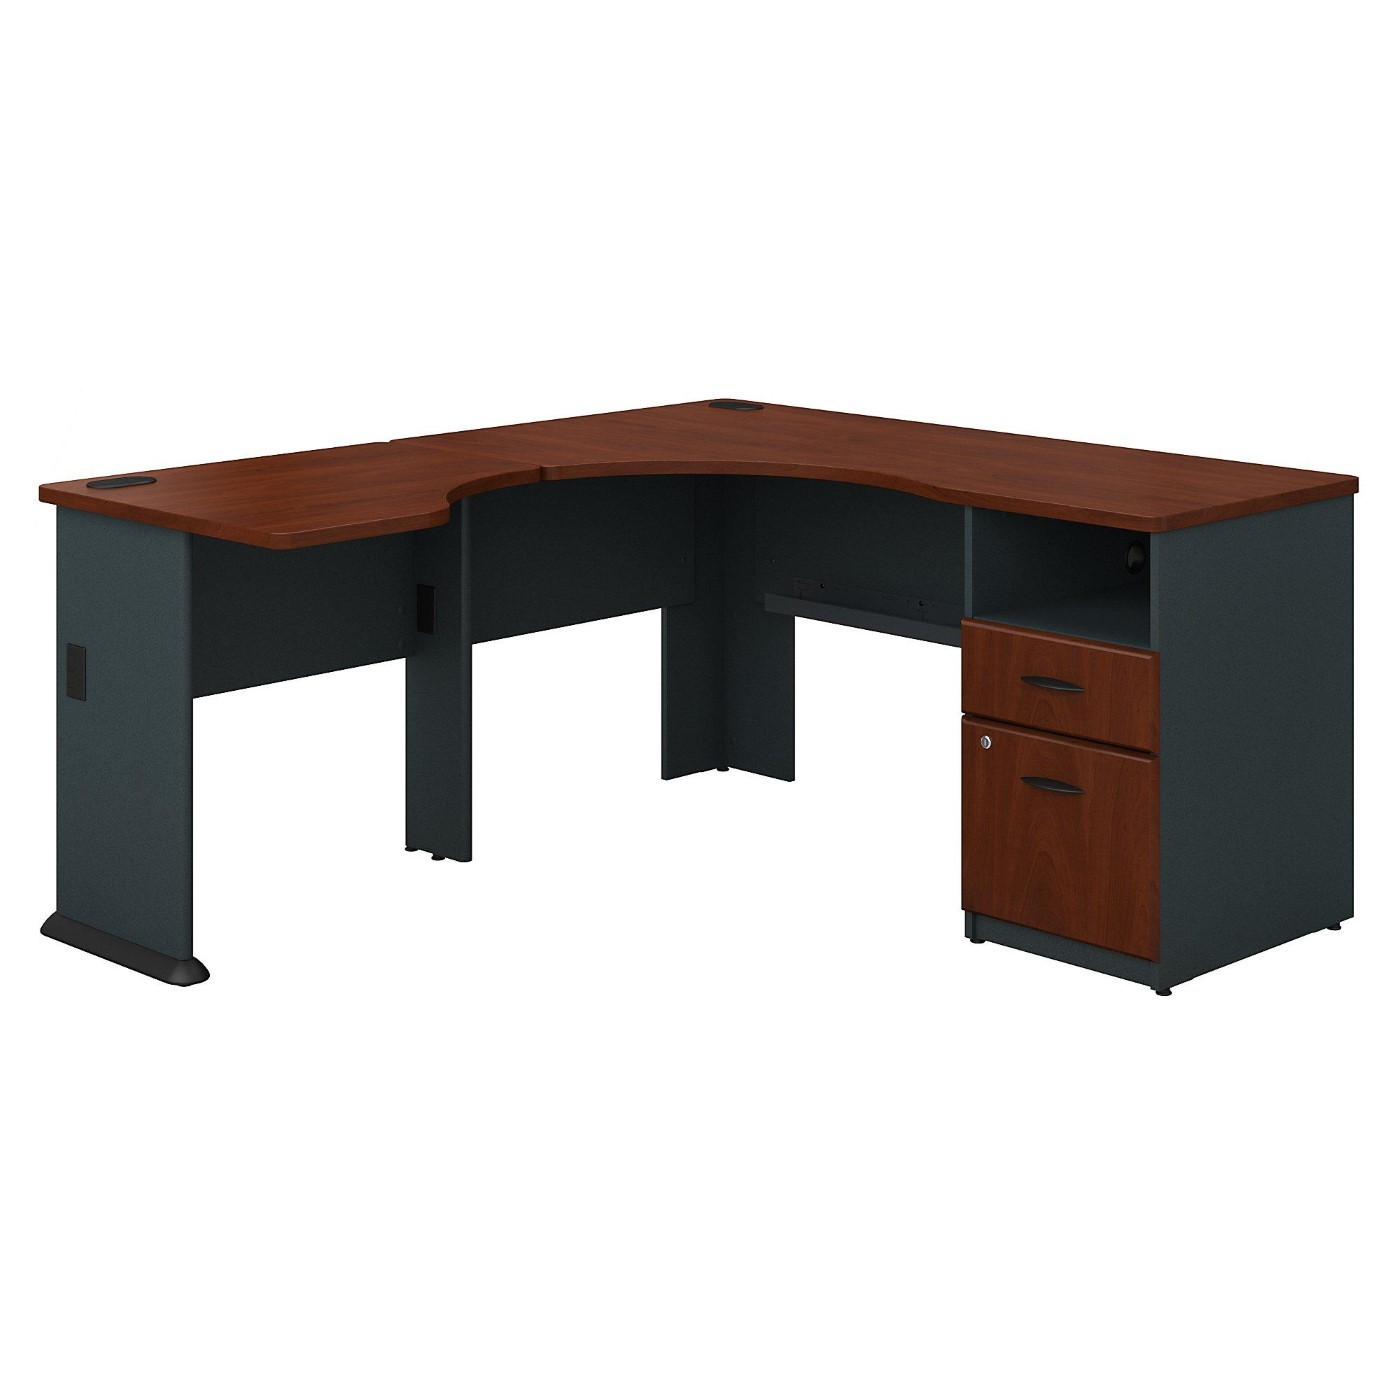 <font color=#c60><b>BUSH BUSINESS FURNITURE SERIES A 60W L SHAPED CORNER DESK WITH 2 DRAWER PEDESTAL AND 30W BRIDGE. FREE SHIPPING</font></b></font></b>